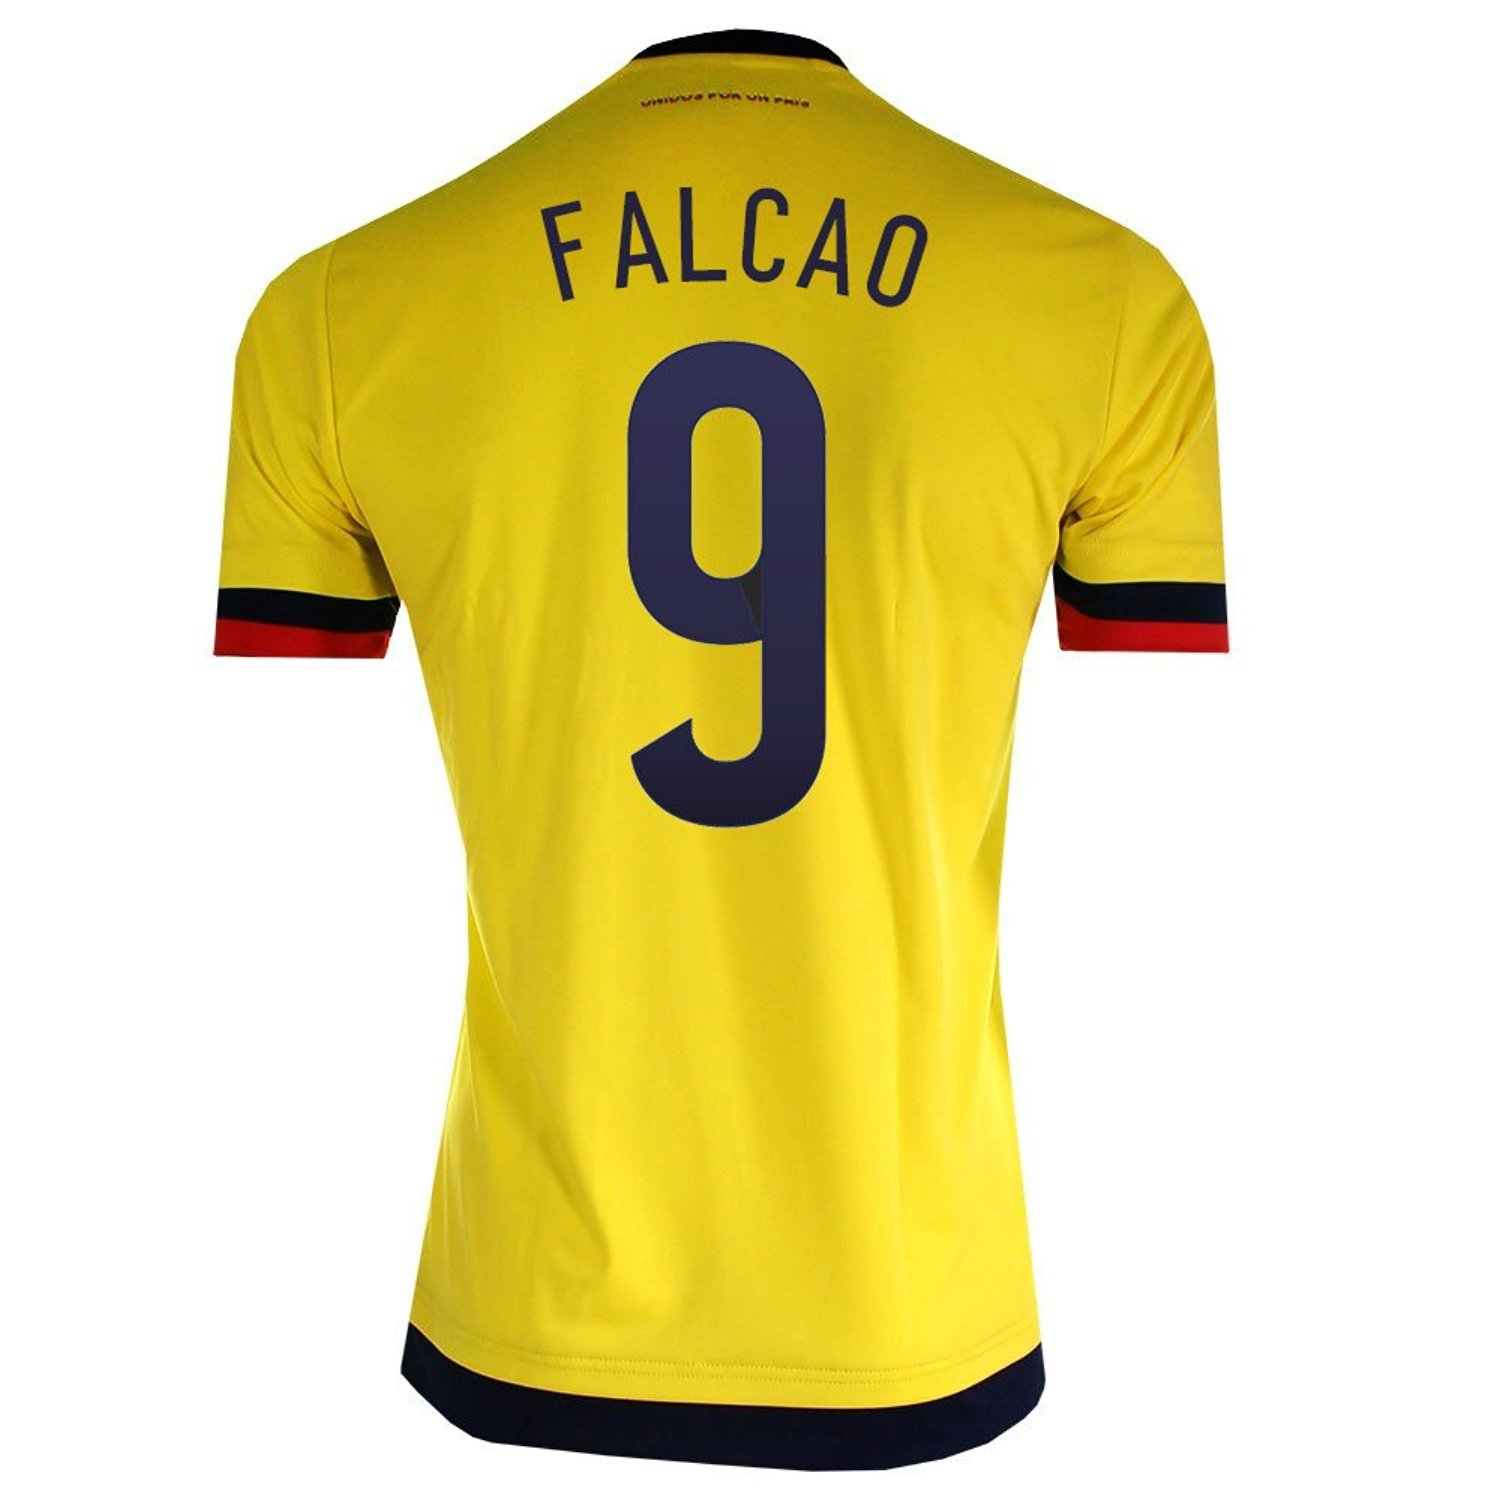 70e6cab7b1d Get Quotations · Falcao  9 Colombia Home Soccer Jersey 2015